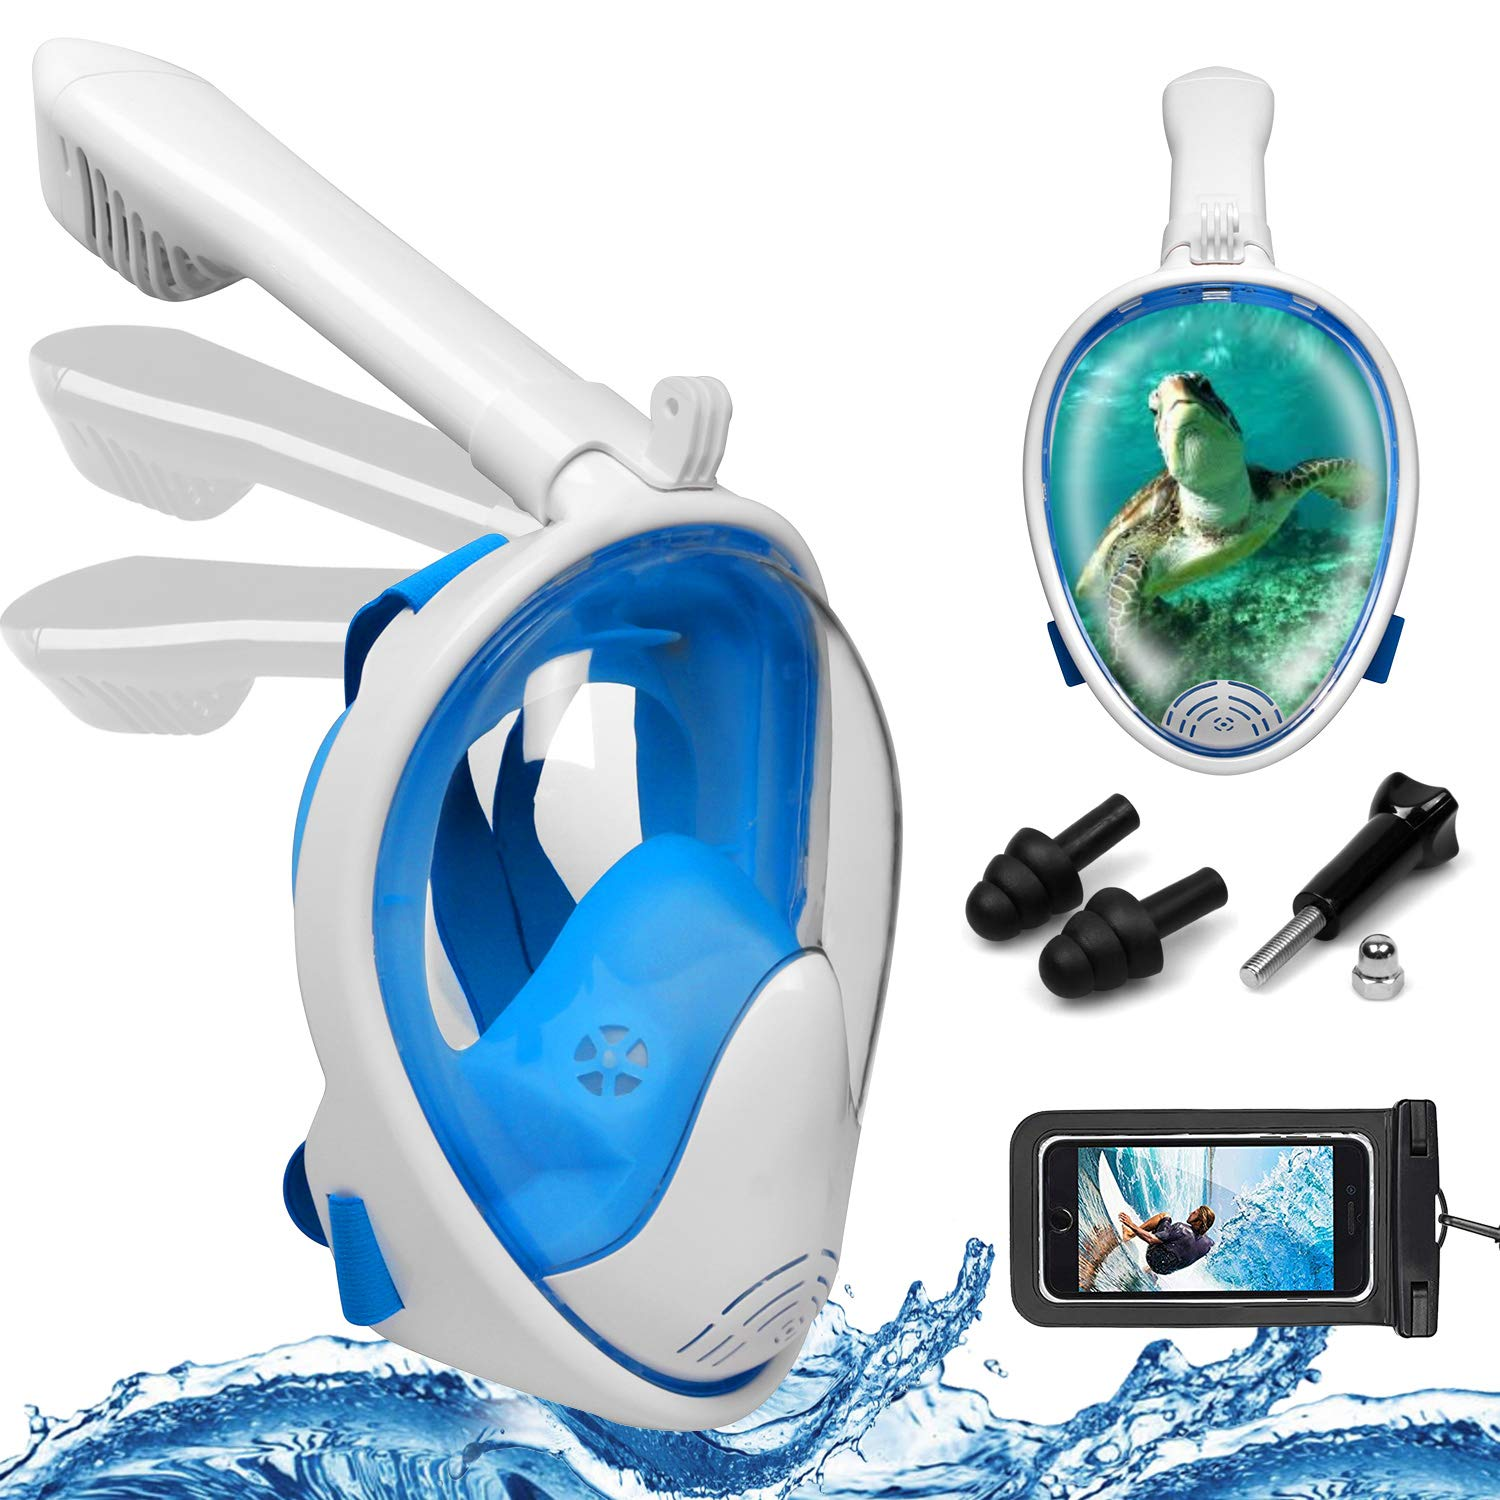 Foldable Full Face Snorkel Mask, 180° Panoramic View Scuba Diving Mask Perfect for Kids Swimming & Adult Diving (S/M, Blue)